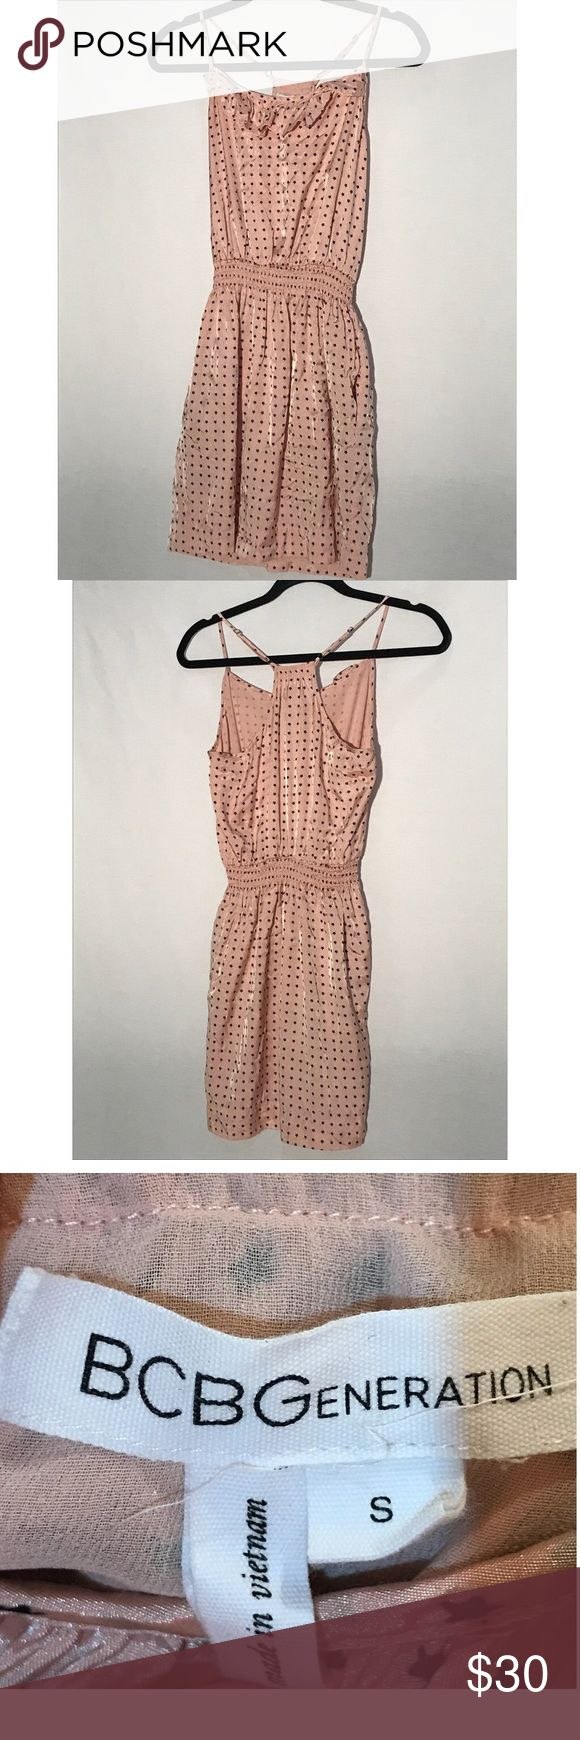 Adorable BCBGeneration pastel pink polka dot dress Adorable BCBGeneration pastel pink and black polka dot (stars) dress. Cute ruffles along the neck line and side pockets!  Elastic waistband. Great condition! BCBGeneration Dresses Mini